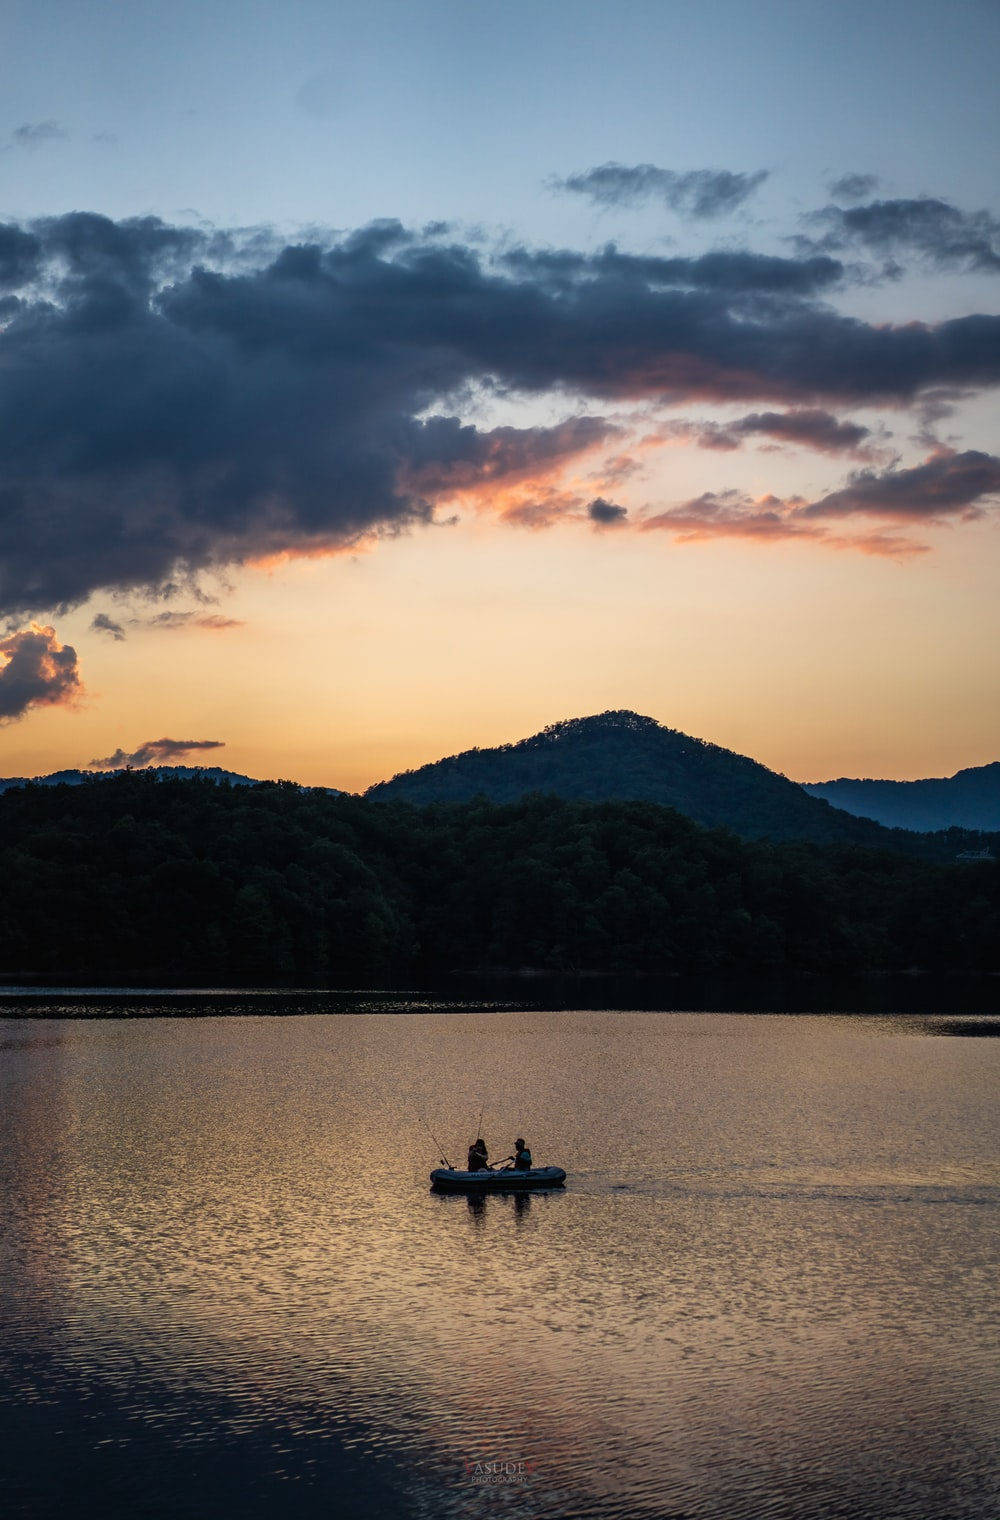 silhouette of people riding boat on lake during sunset